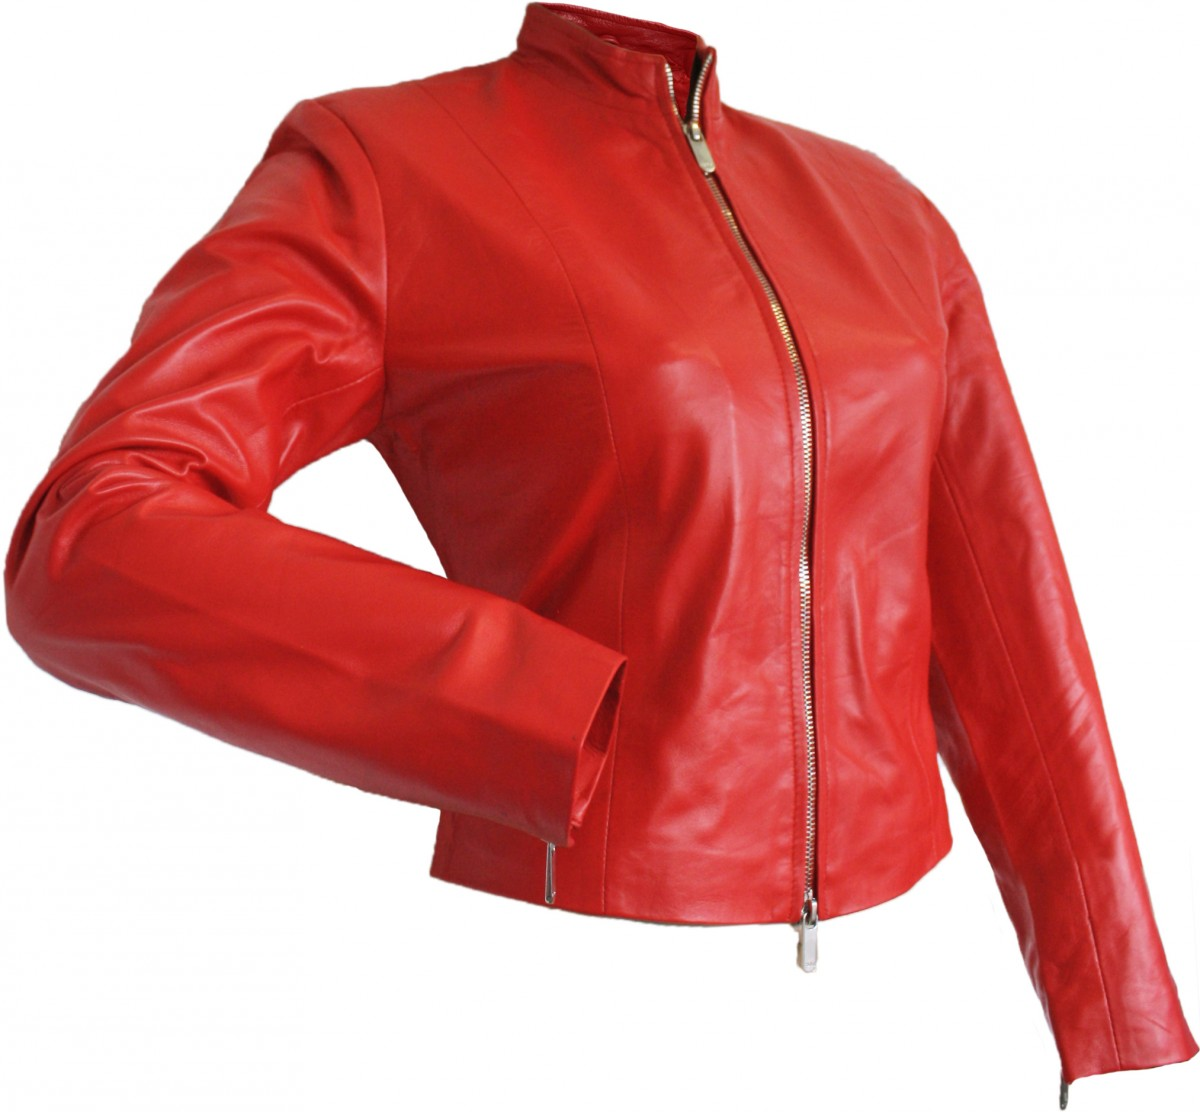 ladies leather jacket fashion lamb nappa leather color red. Black Bedroom Furniture Sets. Home Design Ideas